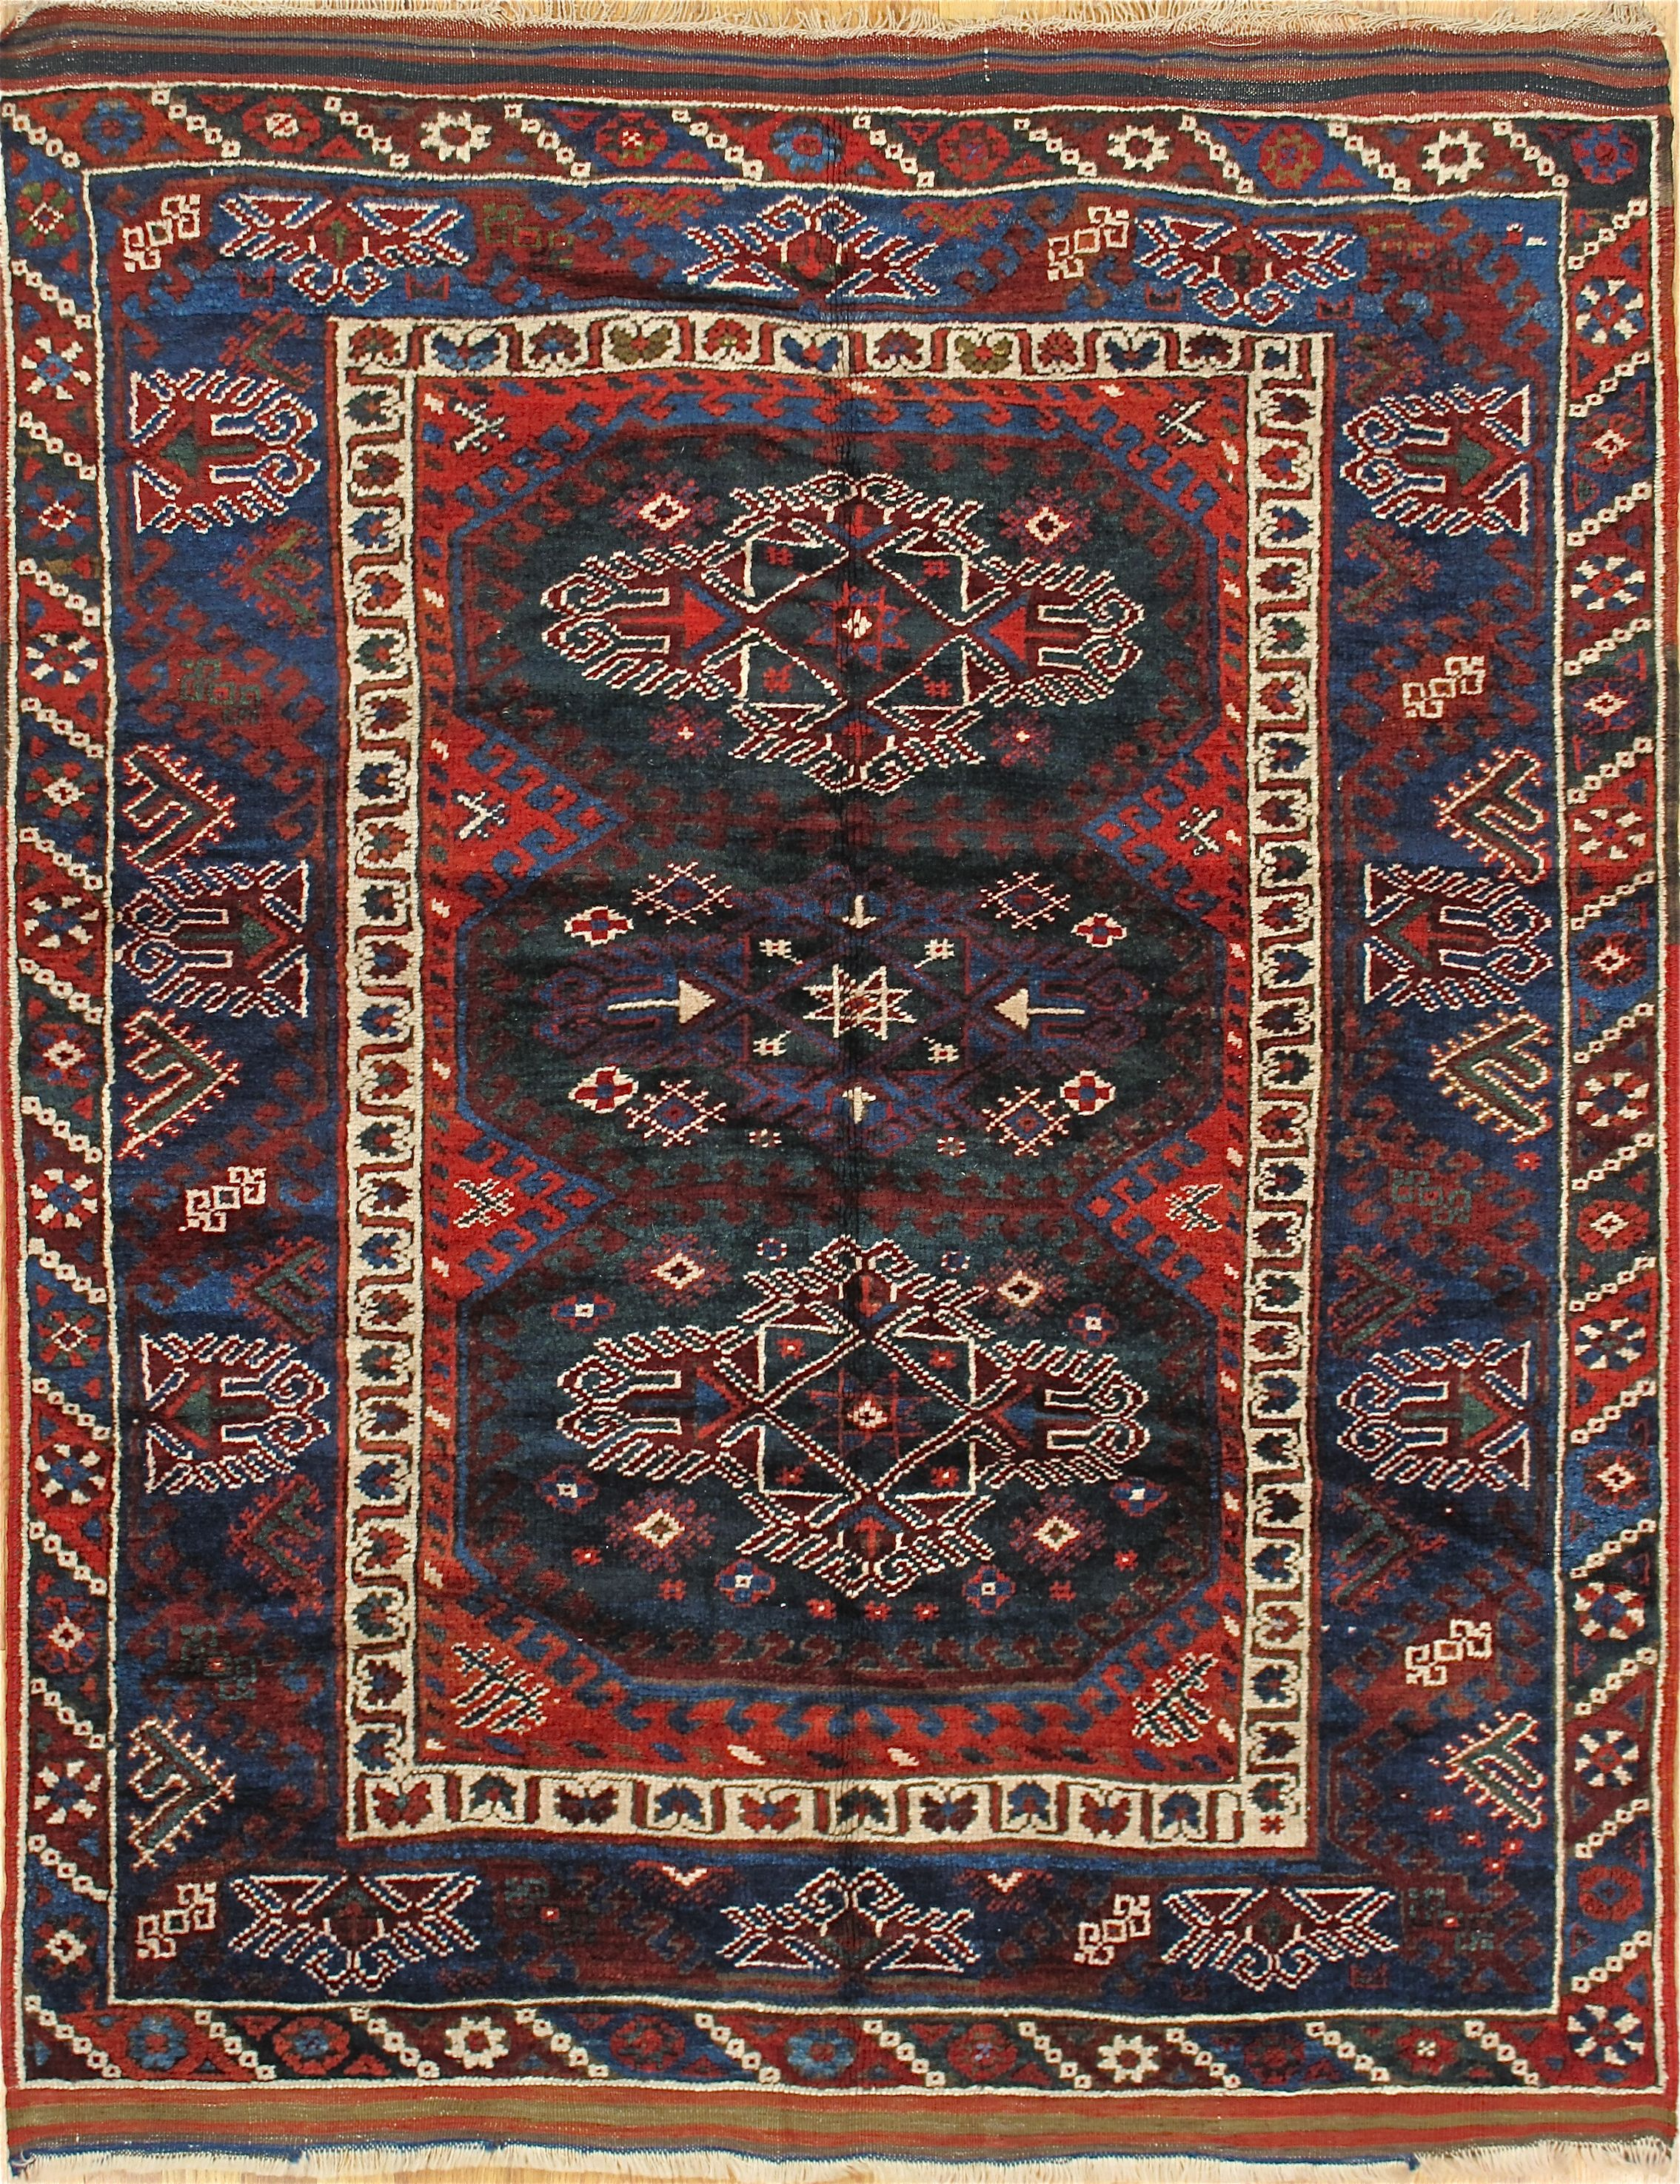 Dosemealti Rug Hagop Manoyan Antique Rugs New York Provides The Finest Selection Of Handmade Caucasian Anatolian And Persian Available